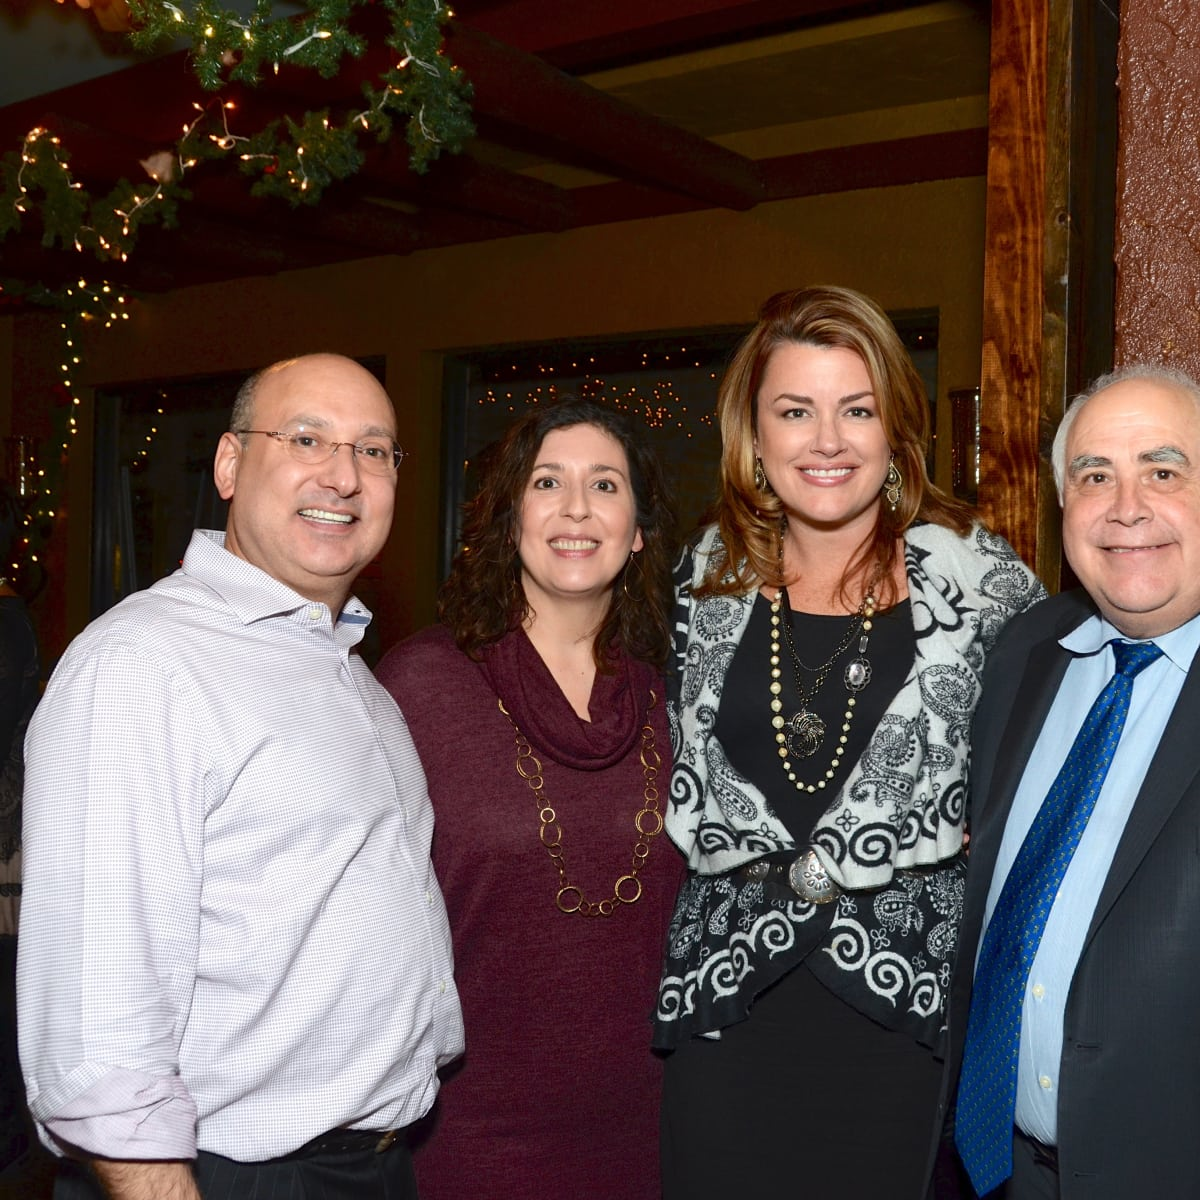 News, Mayor's Hispanic Advisory Board party, Dec. 2015,  Gilbert Garcia, Rose Garcia Moriarty, Miranda Sevcik, William Flores